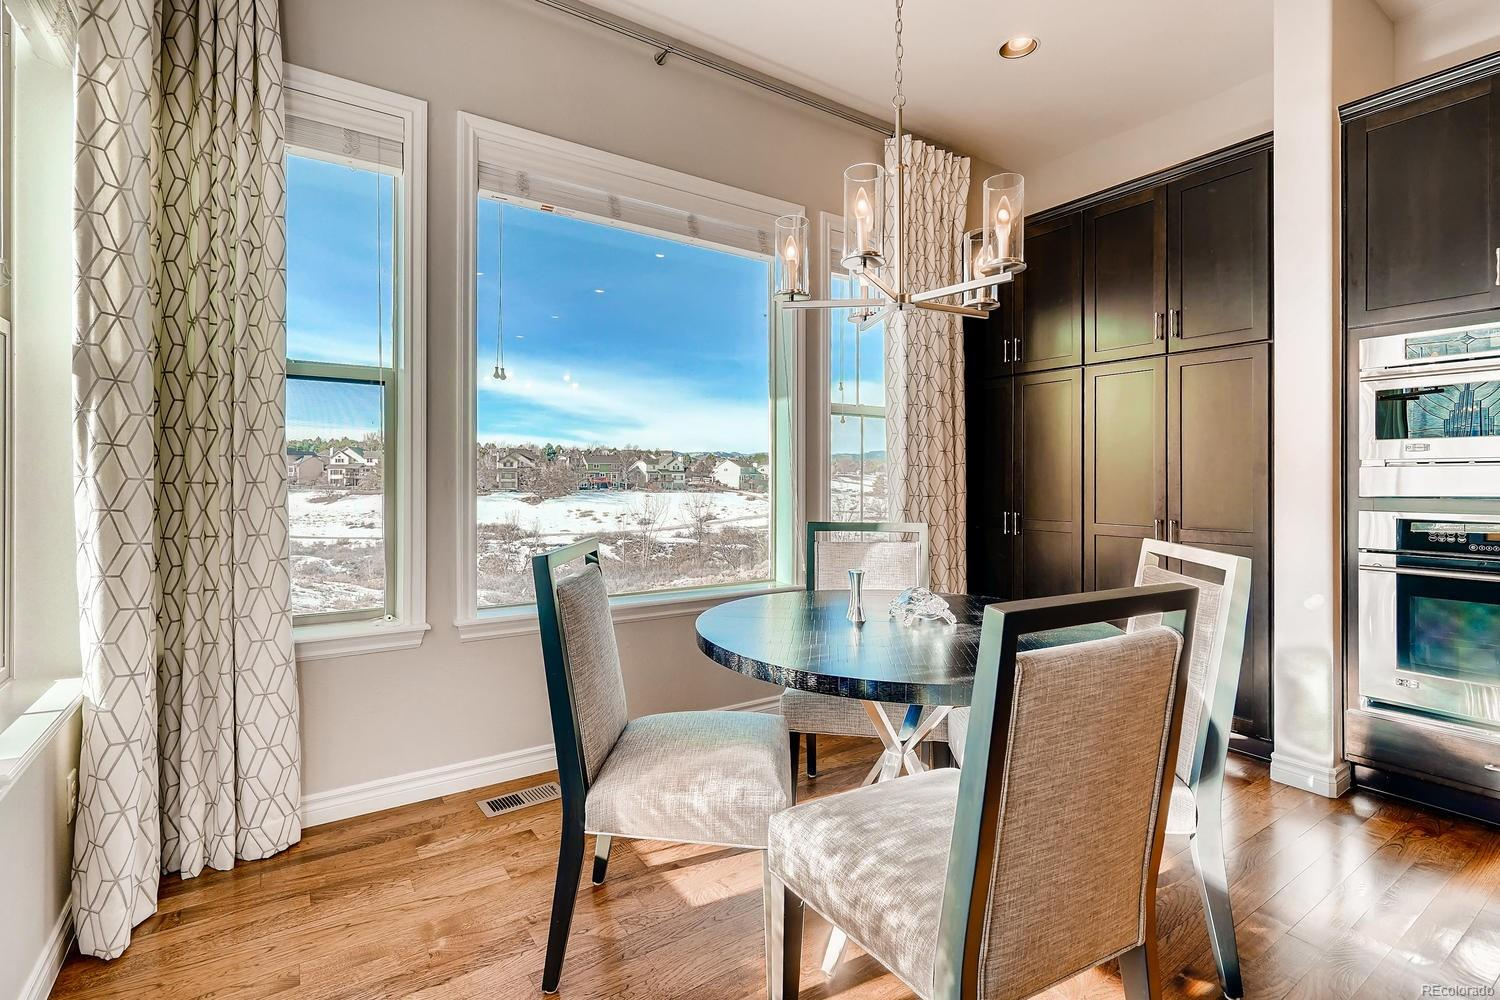 Morning Coffee never looked so good! Notable Pantry with ample storage space and